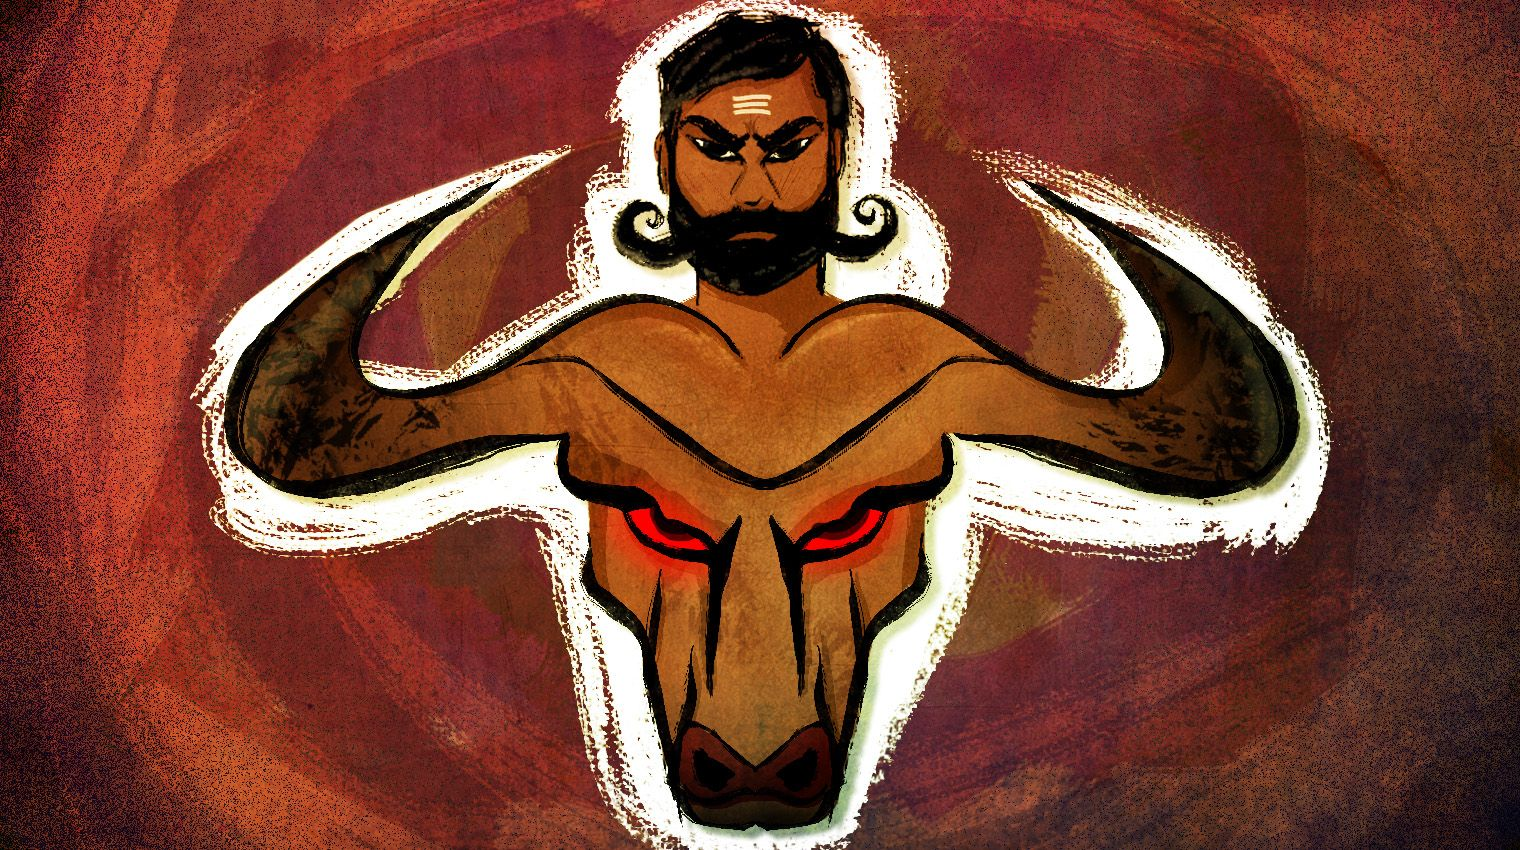 The triumph of jallikattu protests symbolises a victory for Tamil hypermasculinity and machismo, perpetuated for decades through our films and music.